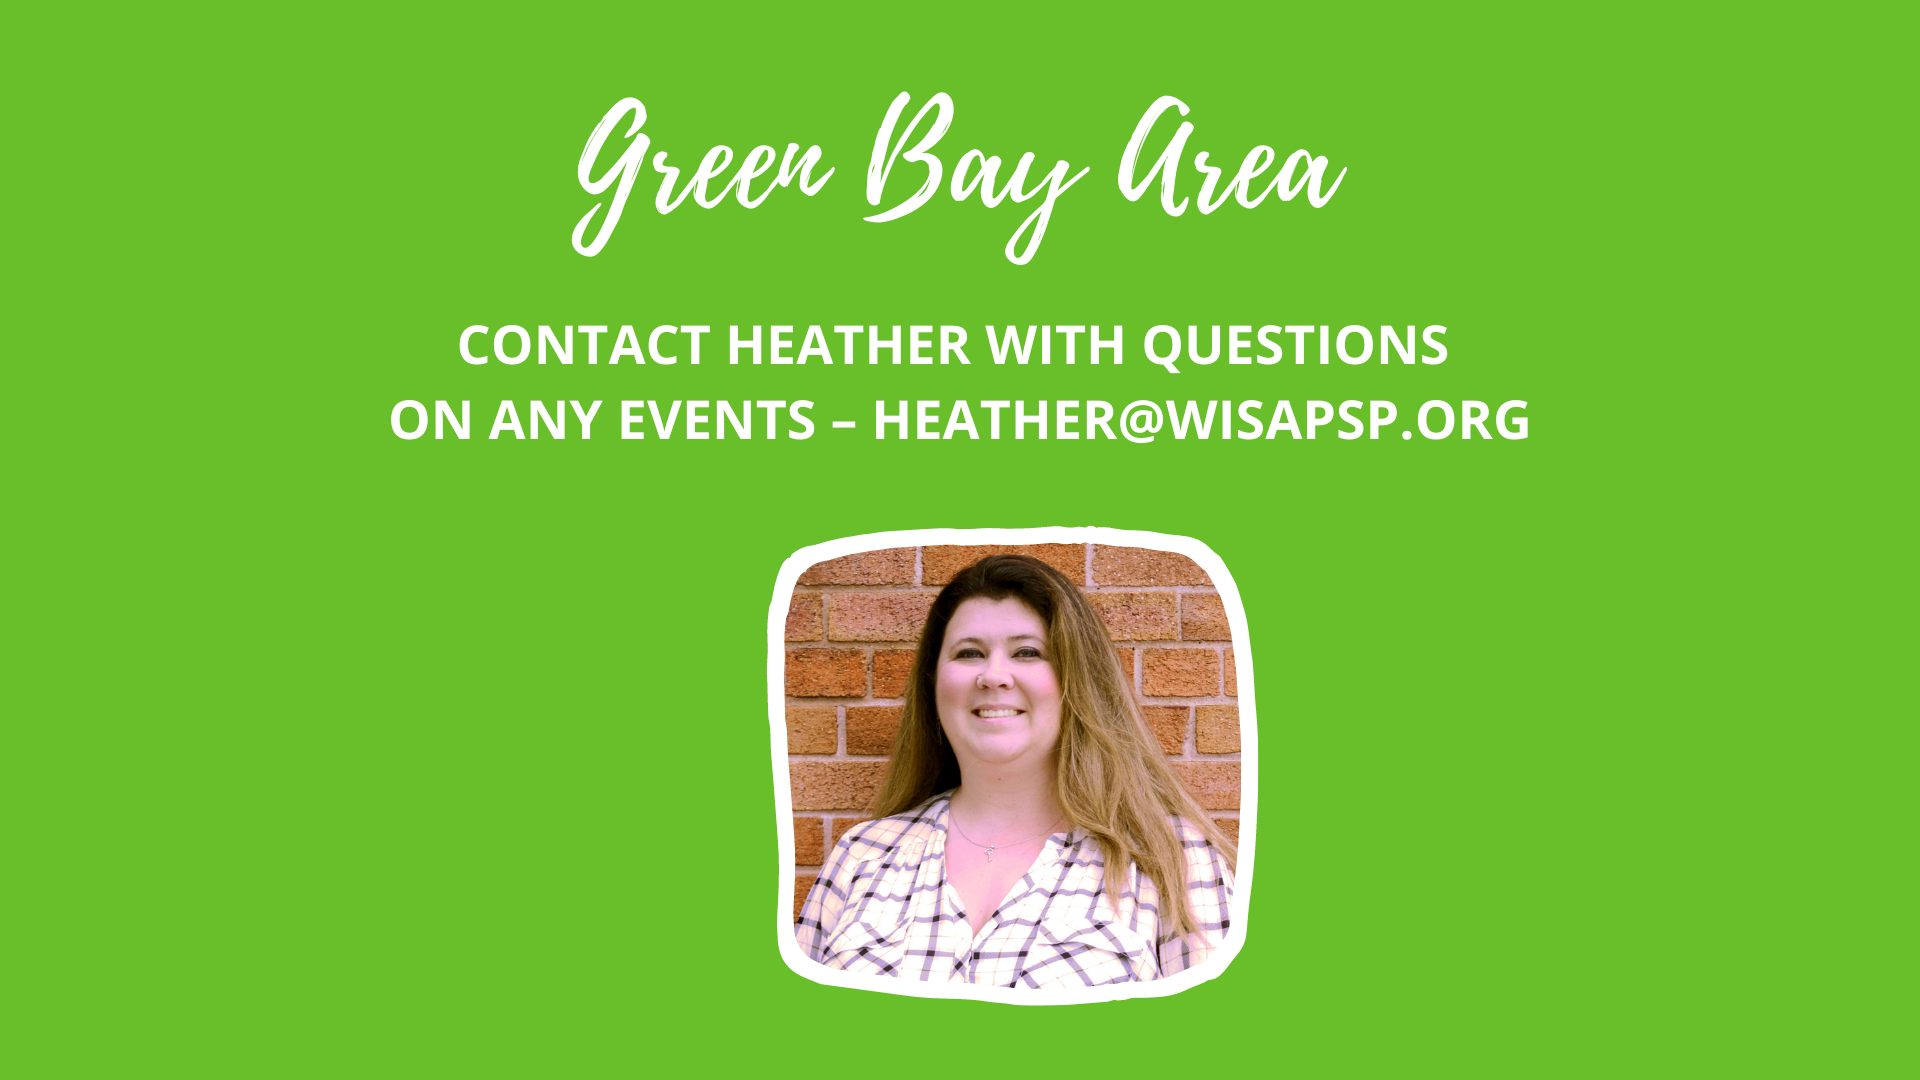 Green Bay area events